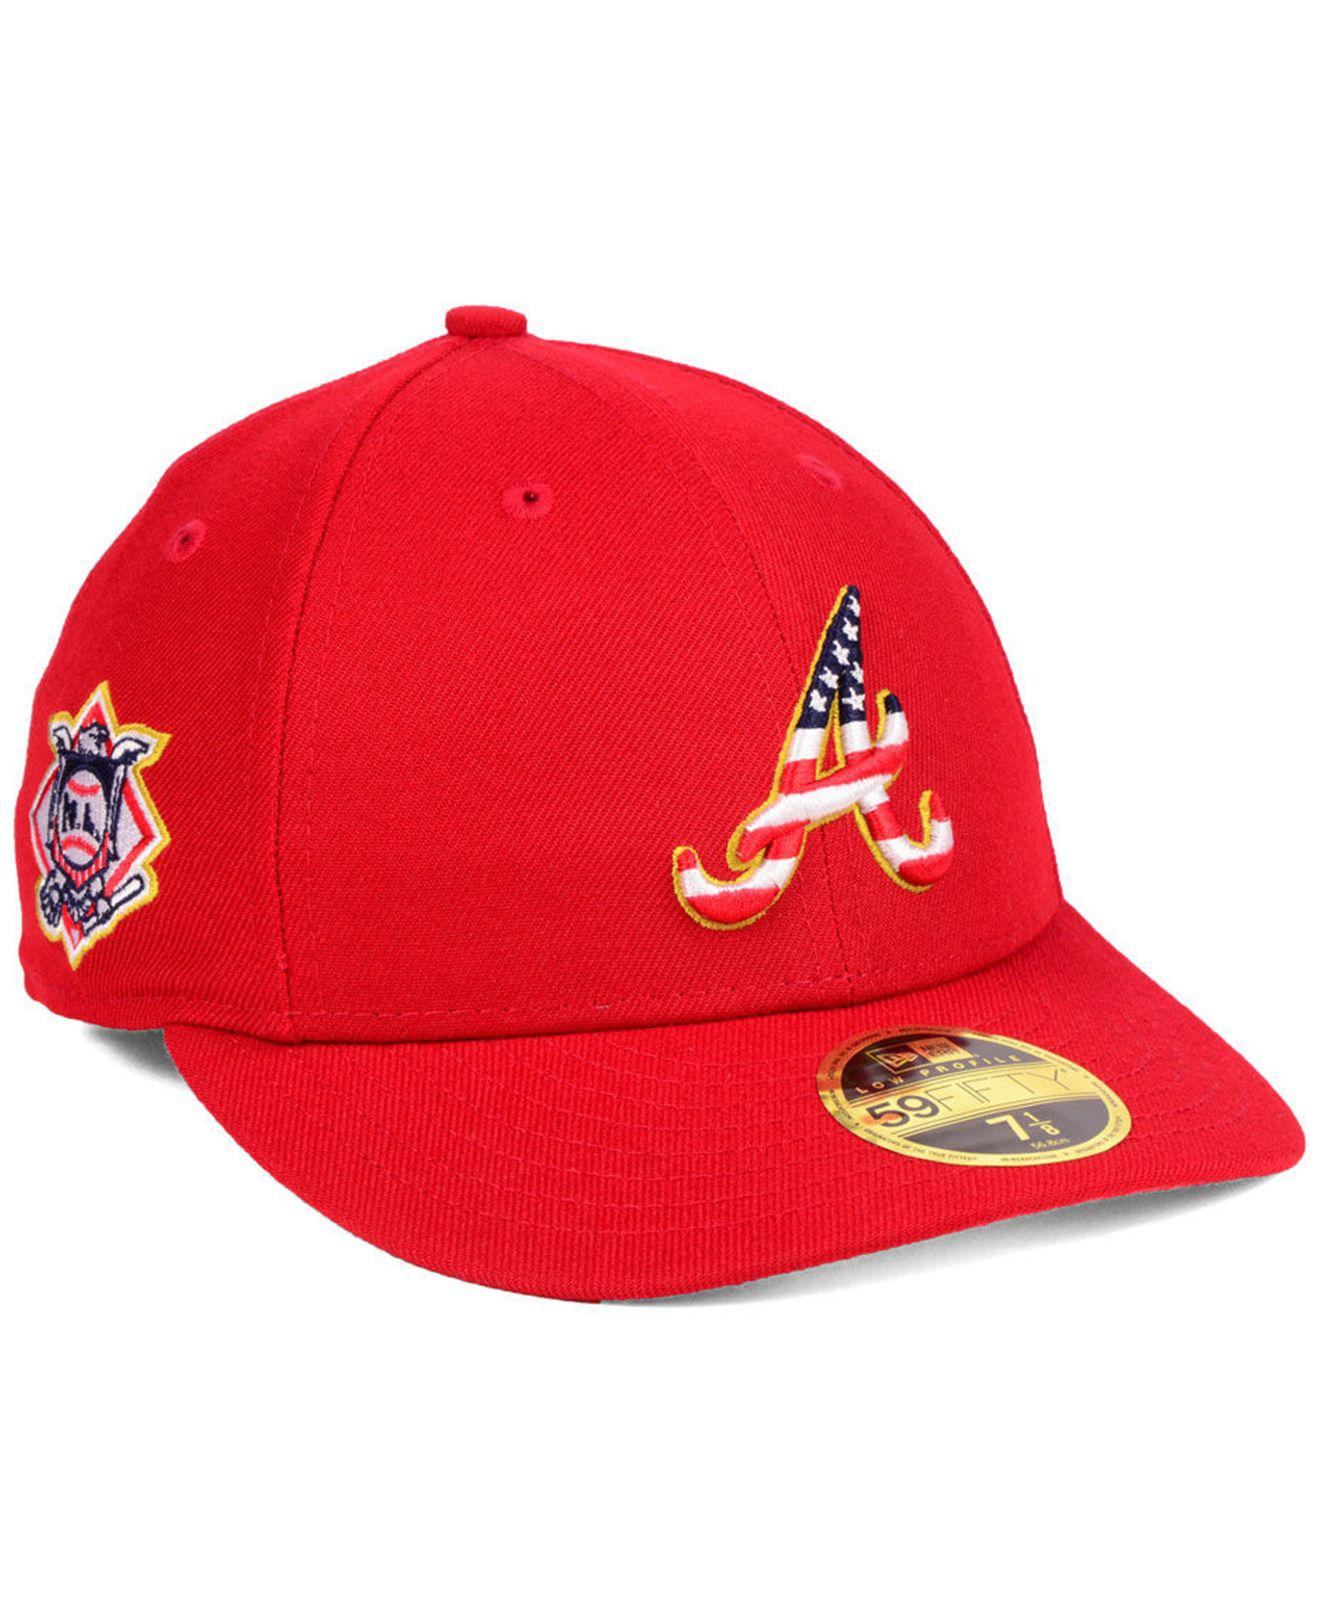 8311302f199 Lyst - KTZ Atlanta Braves Stars And Stripes Low Profile 59fifty ...